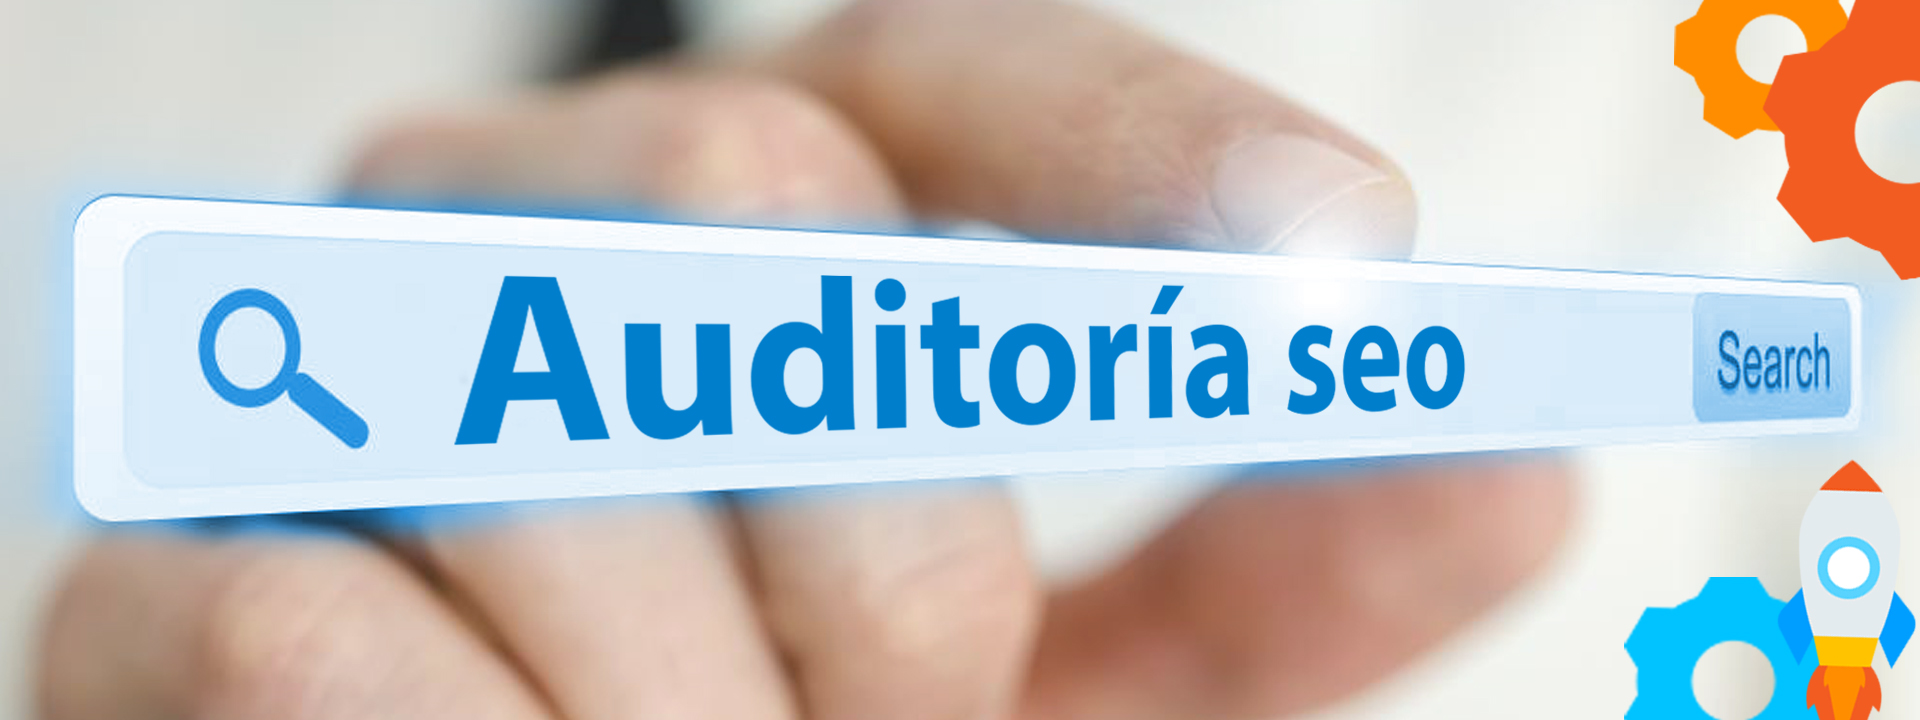 Auditoria SEO - Artech Digital